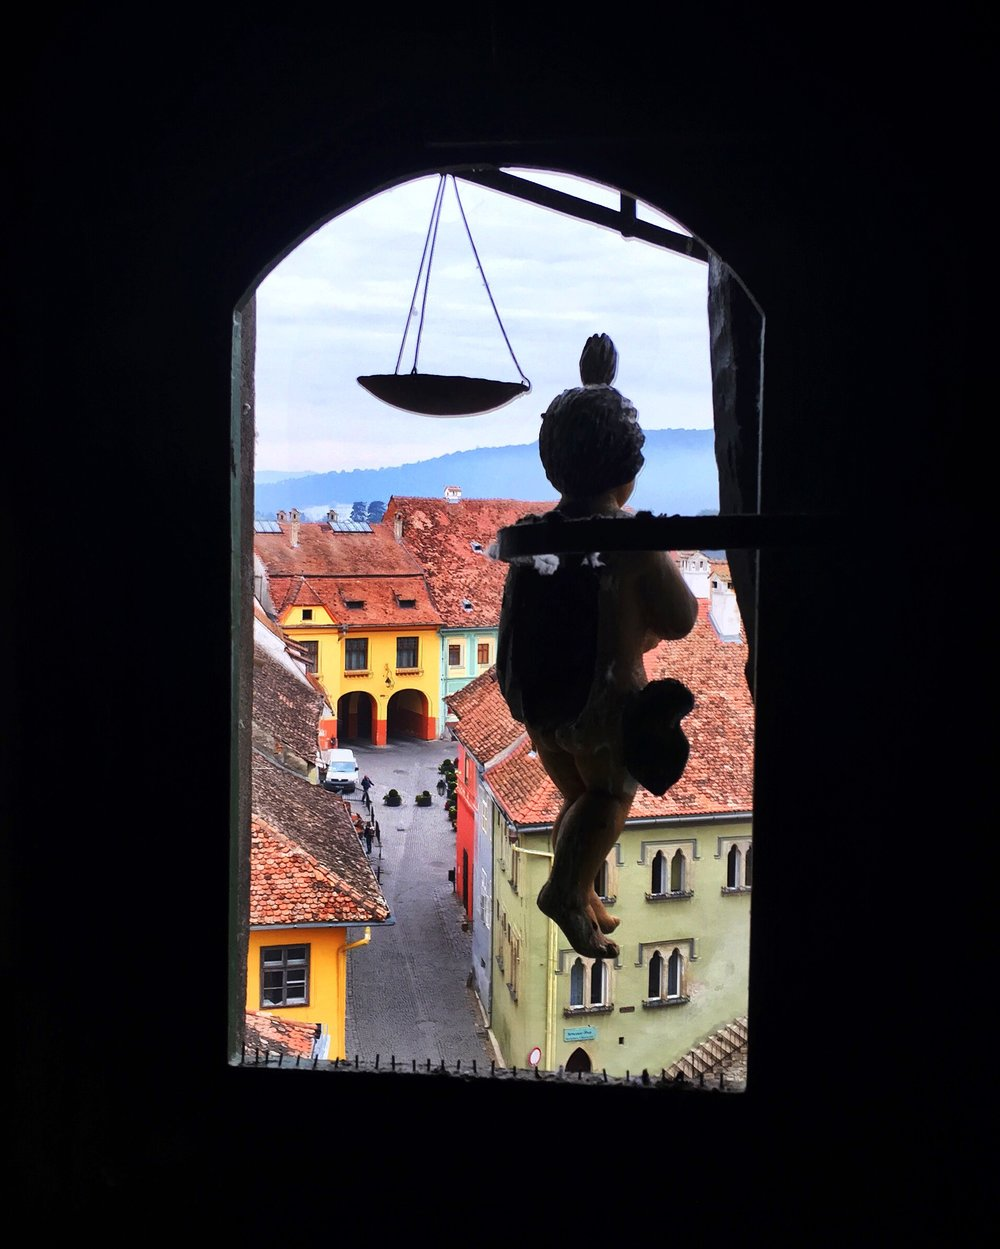 Within the clock tower in Sighisoara, Romania.